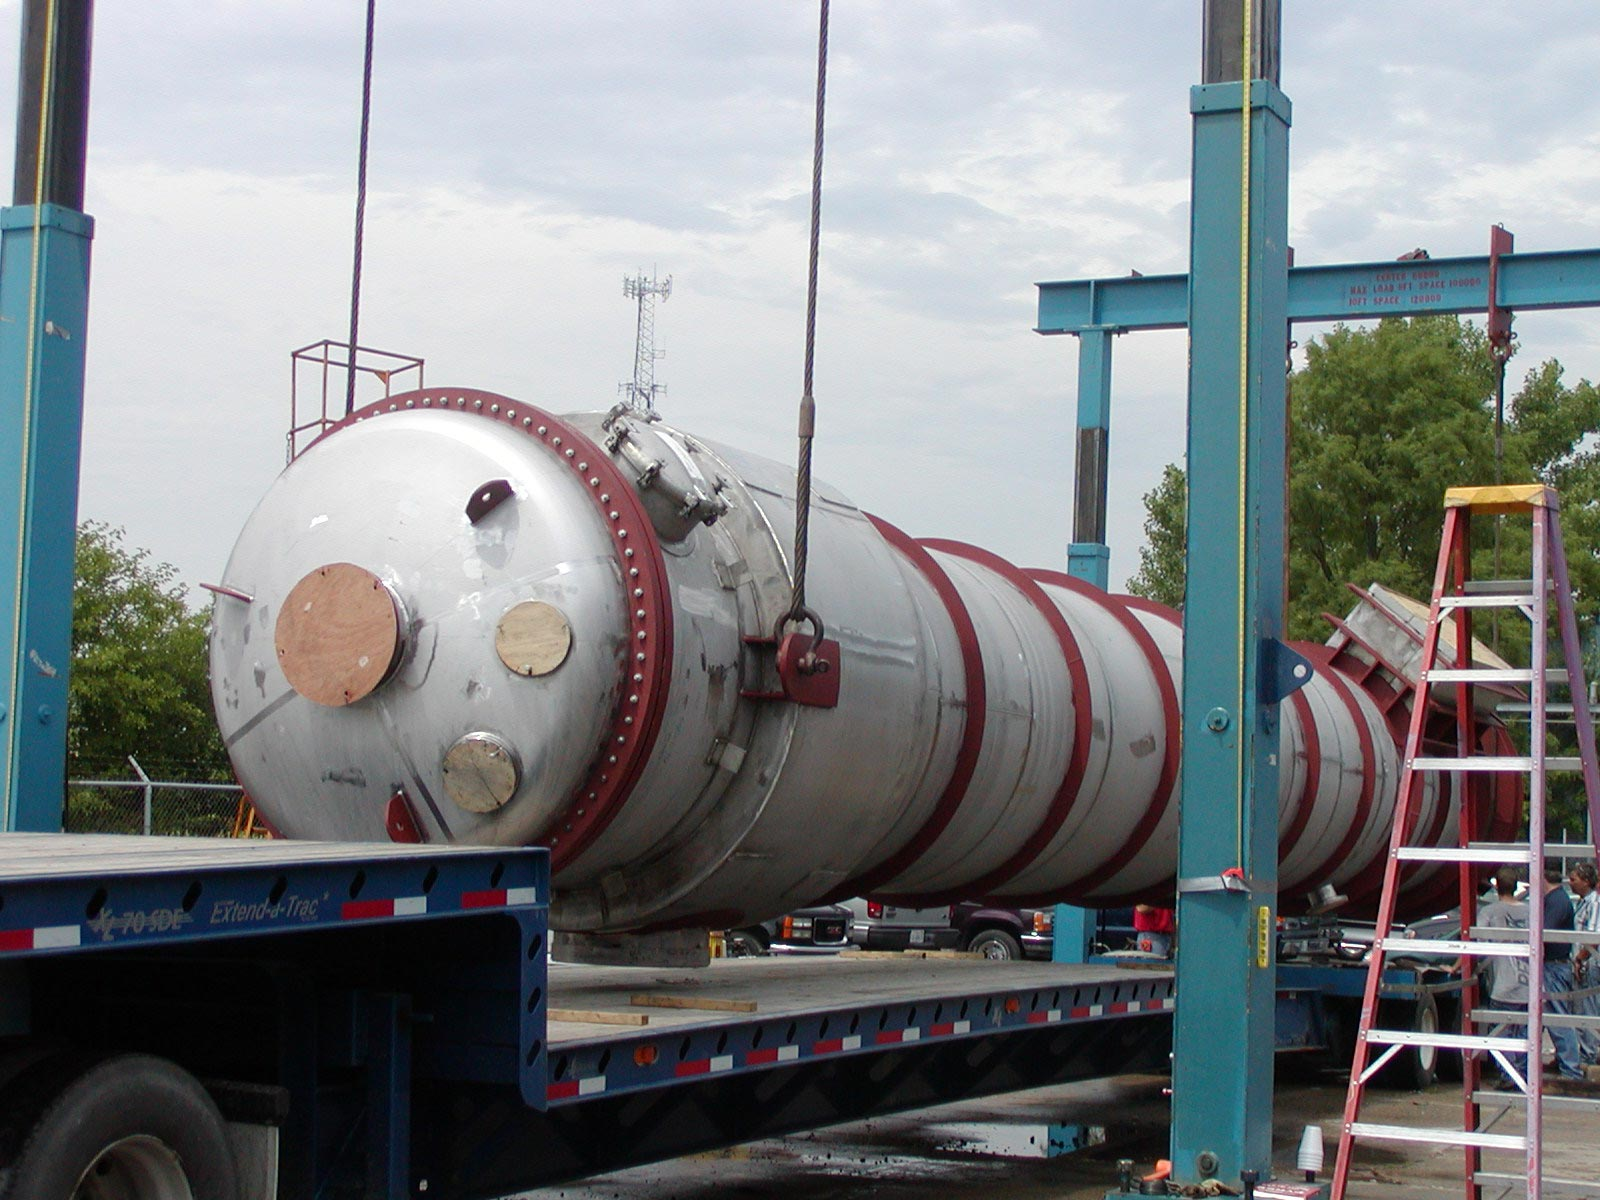 Large Heat Exchanger be loading with Proprietary Heavy Lift Device